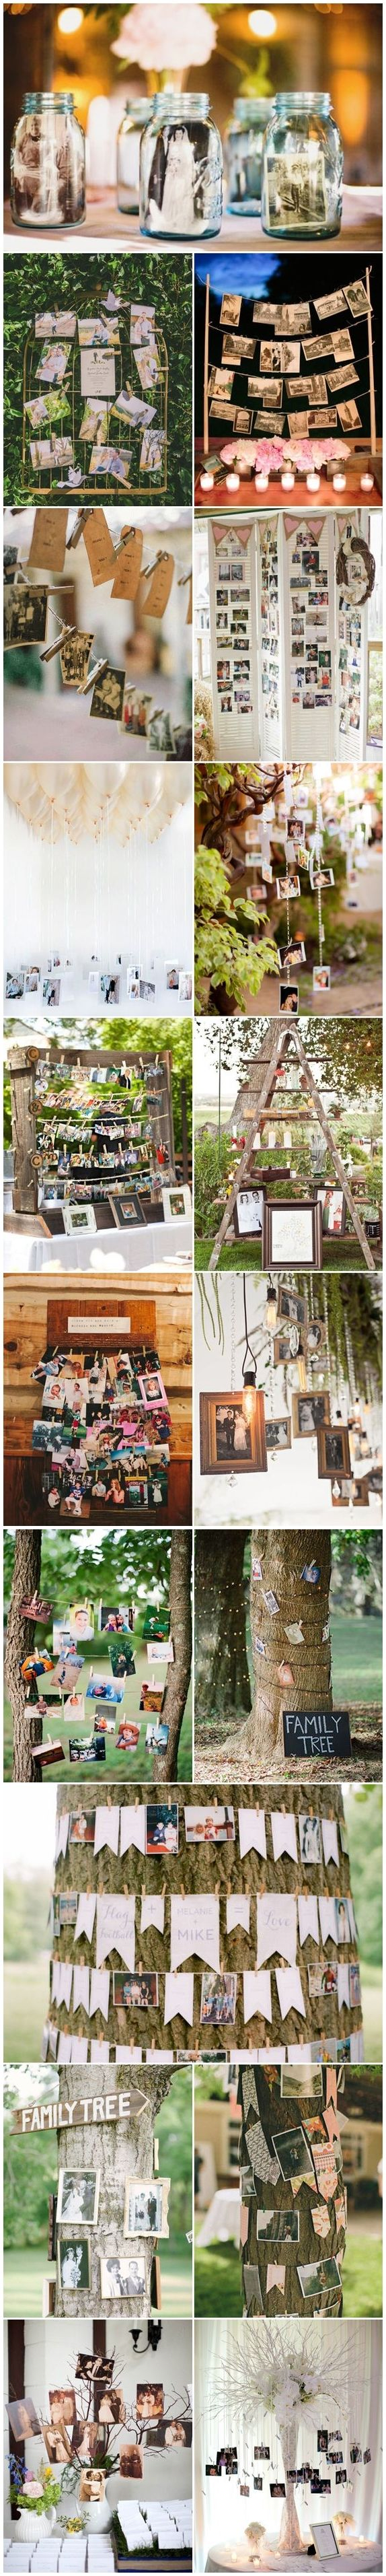 Amazing Ideas to Display Wedding Photos #rusticweddings #weddings #weddingideas #weddinginspiration